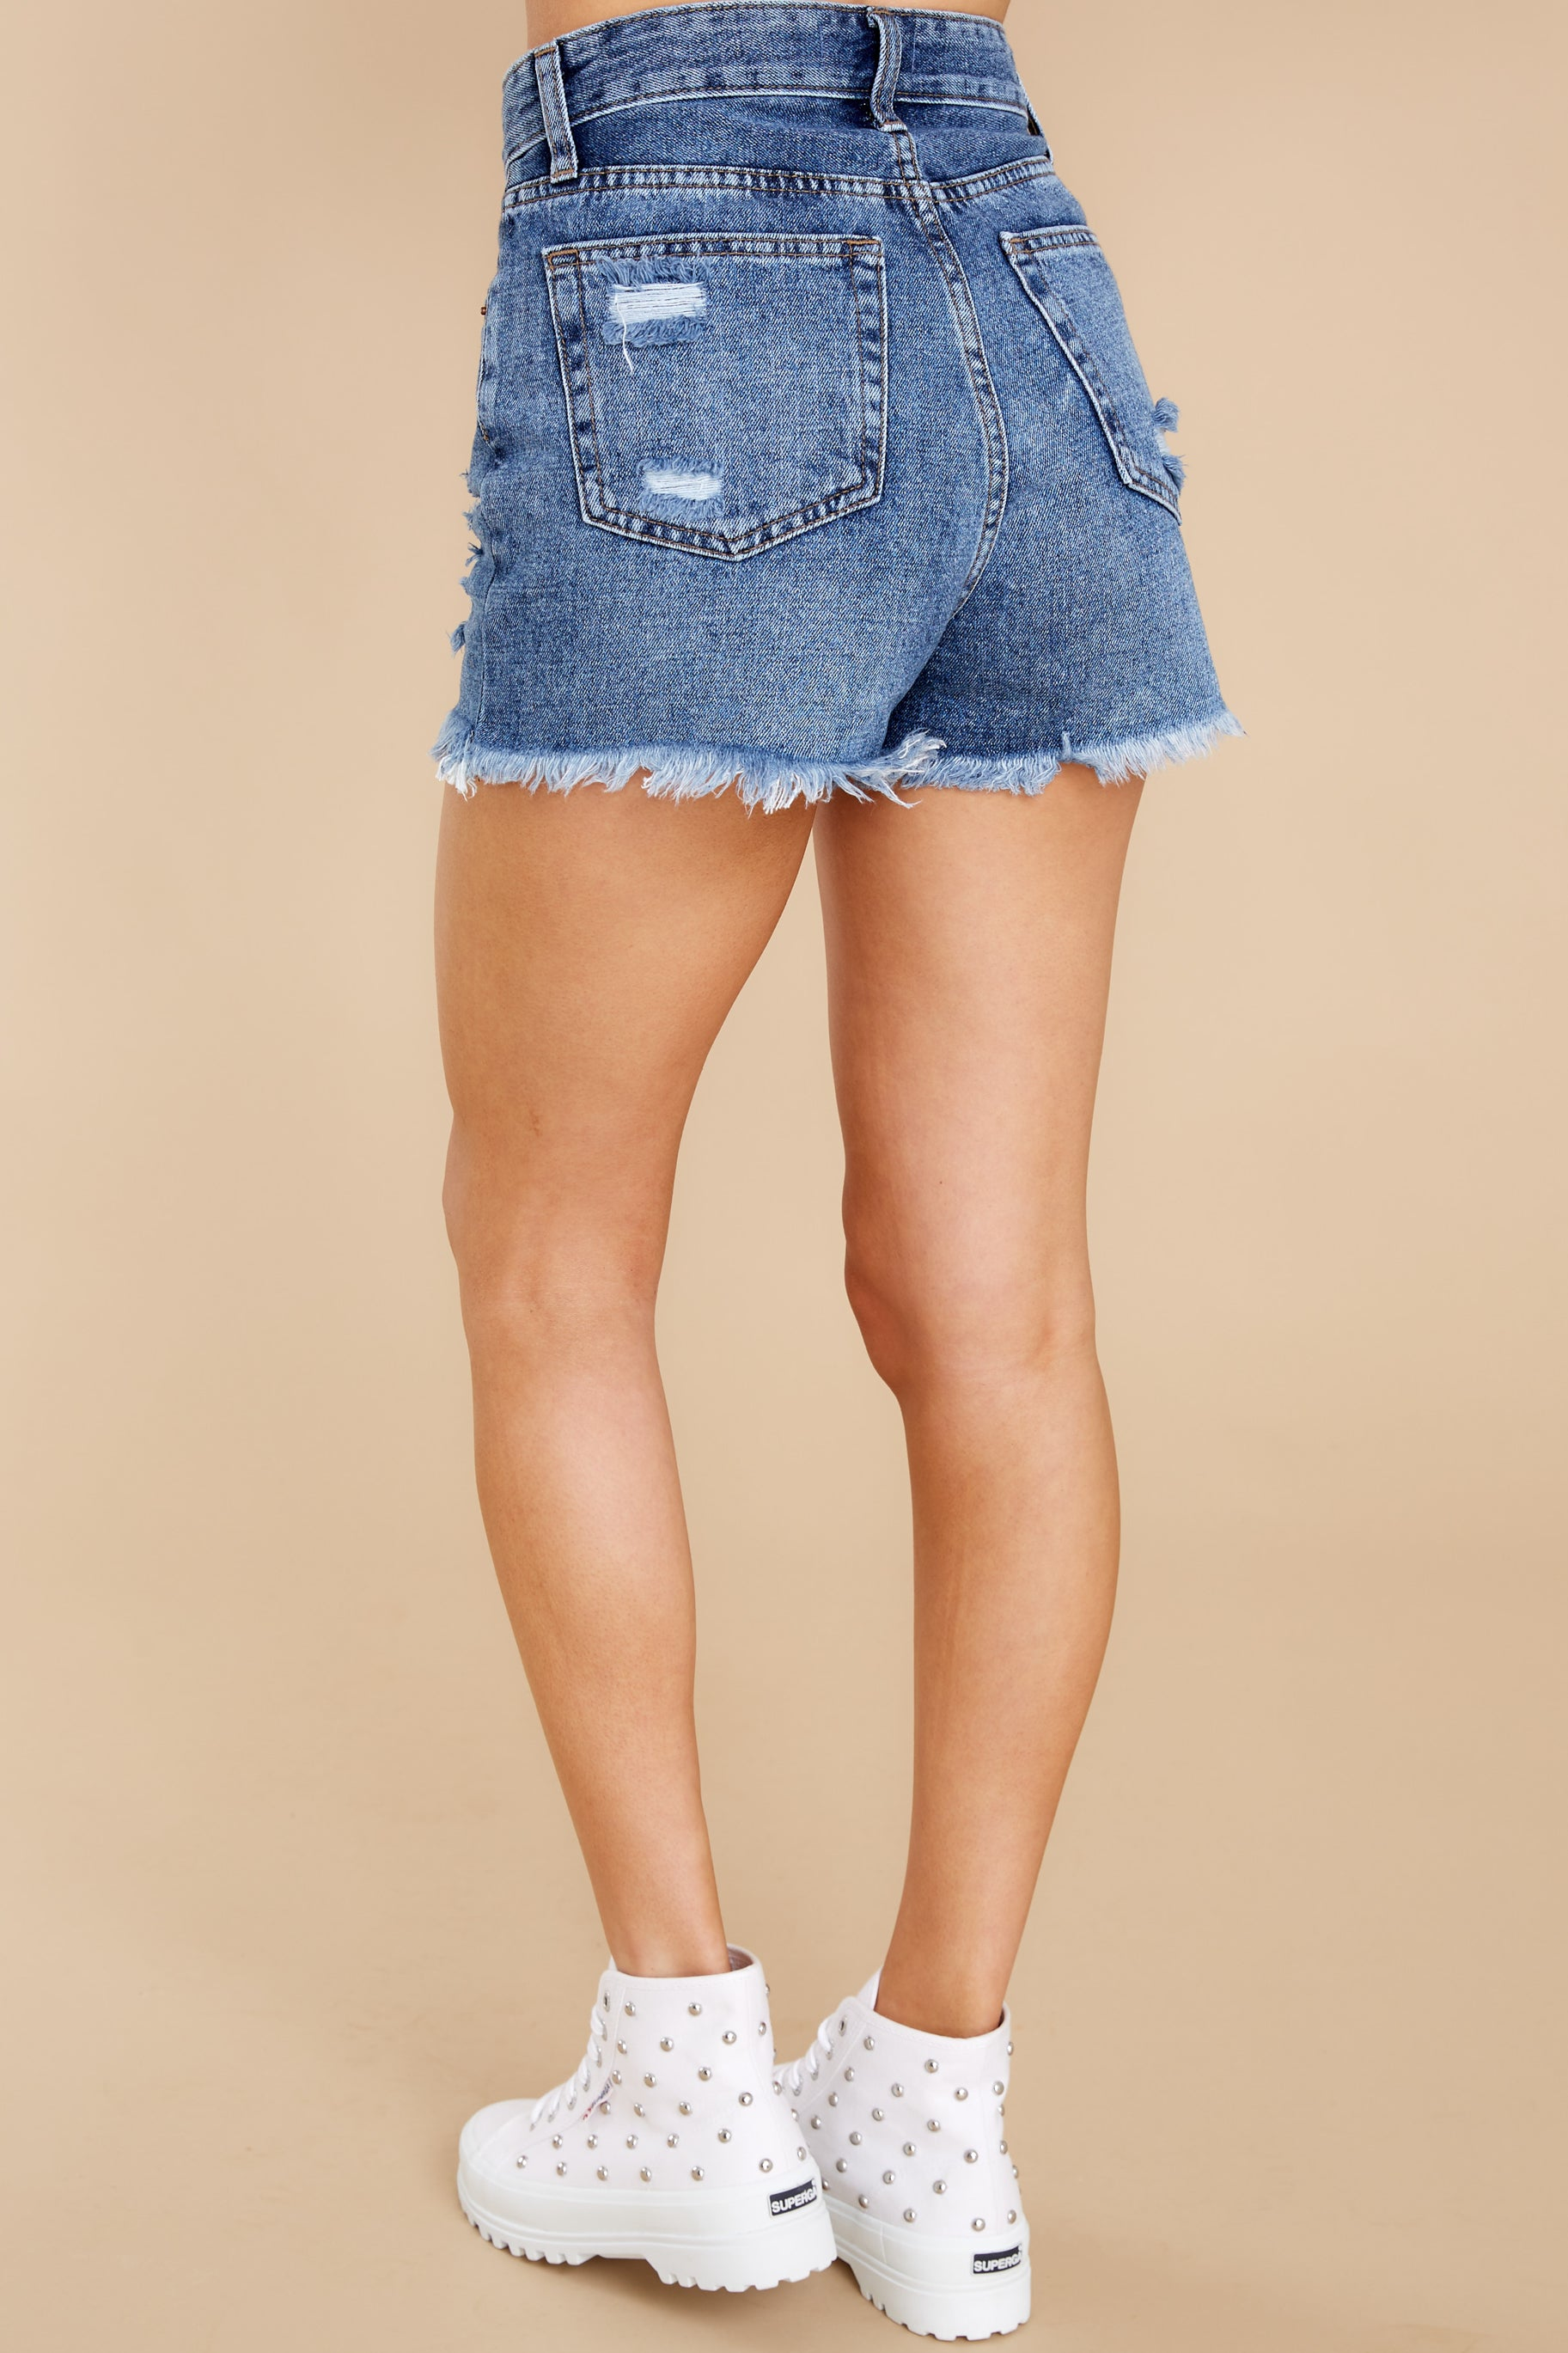 7 No Time To Waste Medium Wash Distressed Denim Shorts at reddress.com